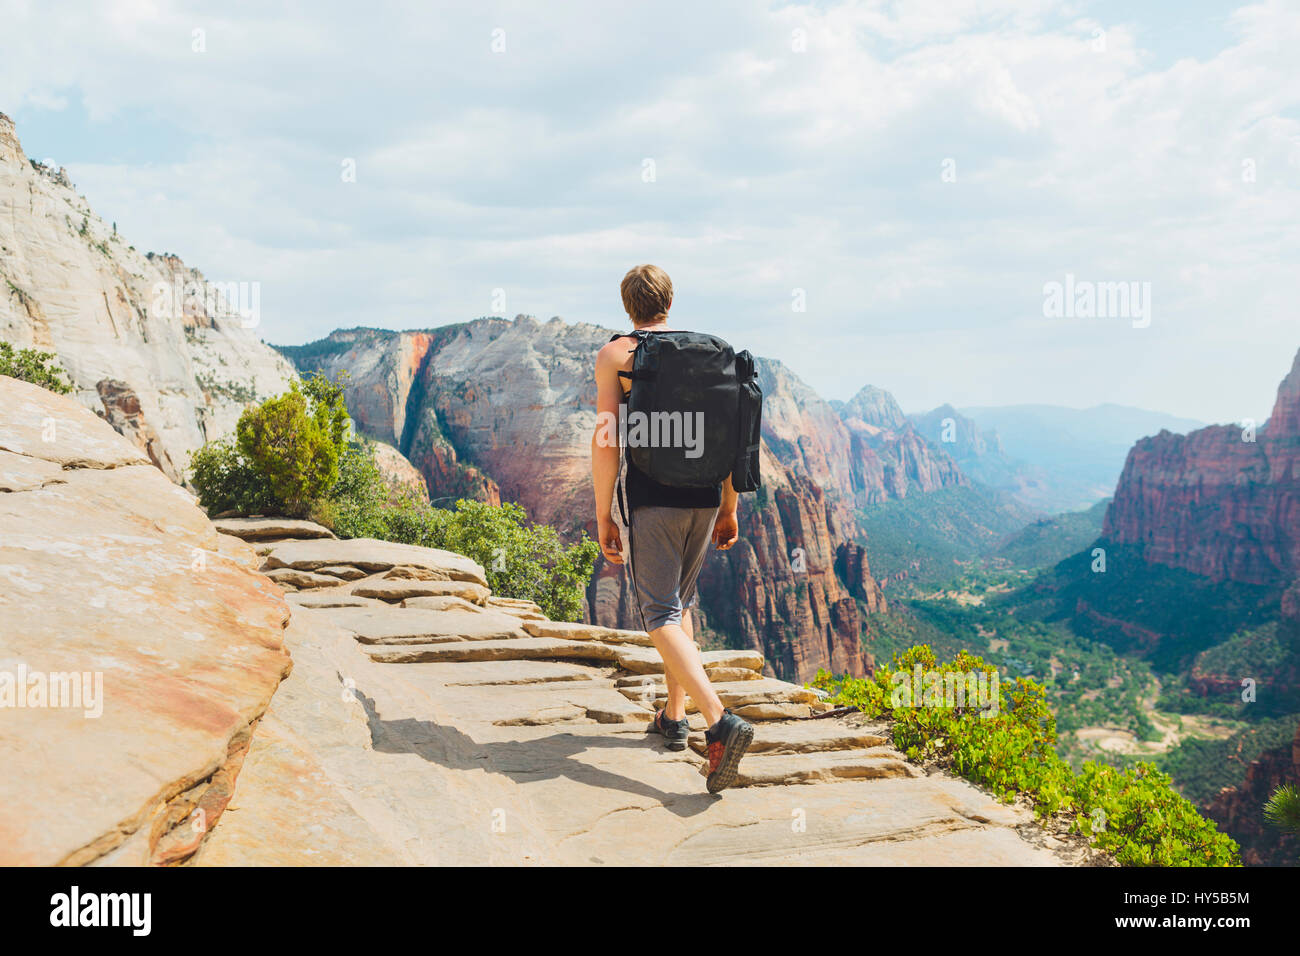 USA, Utah, Man hiking in Zion National Park - Stock Image